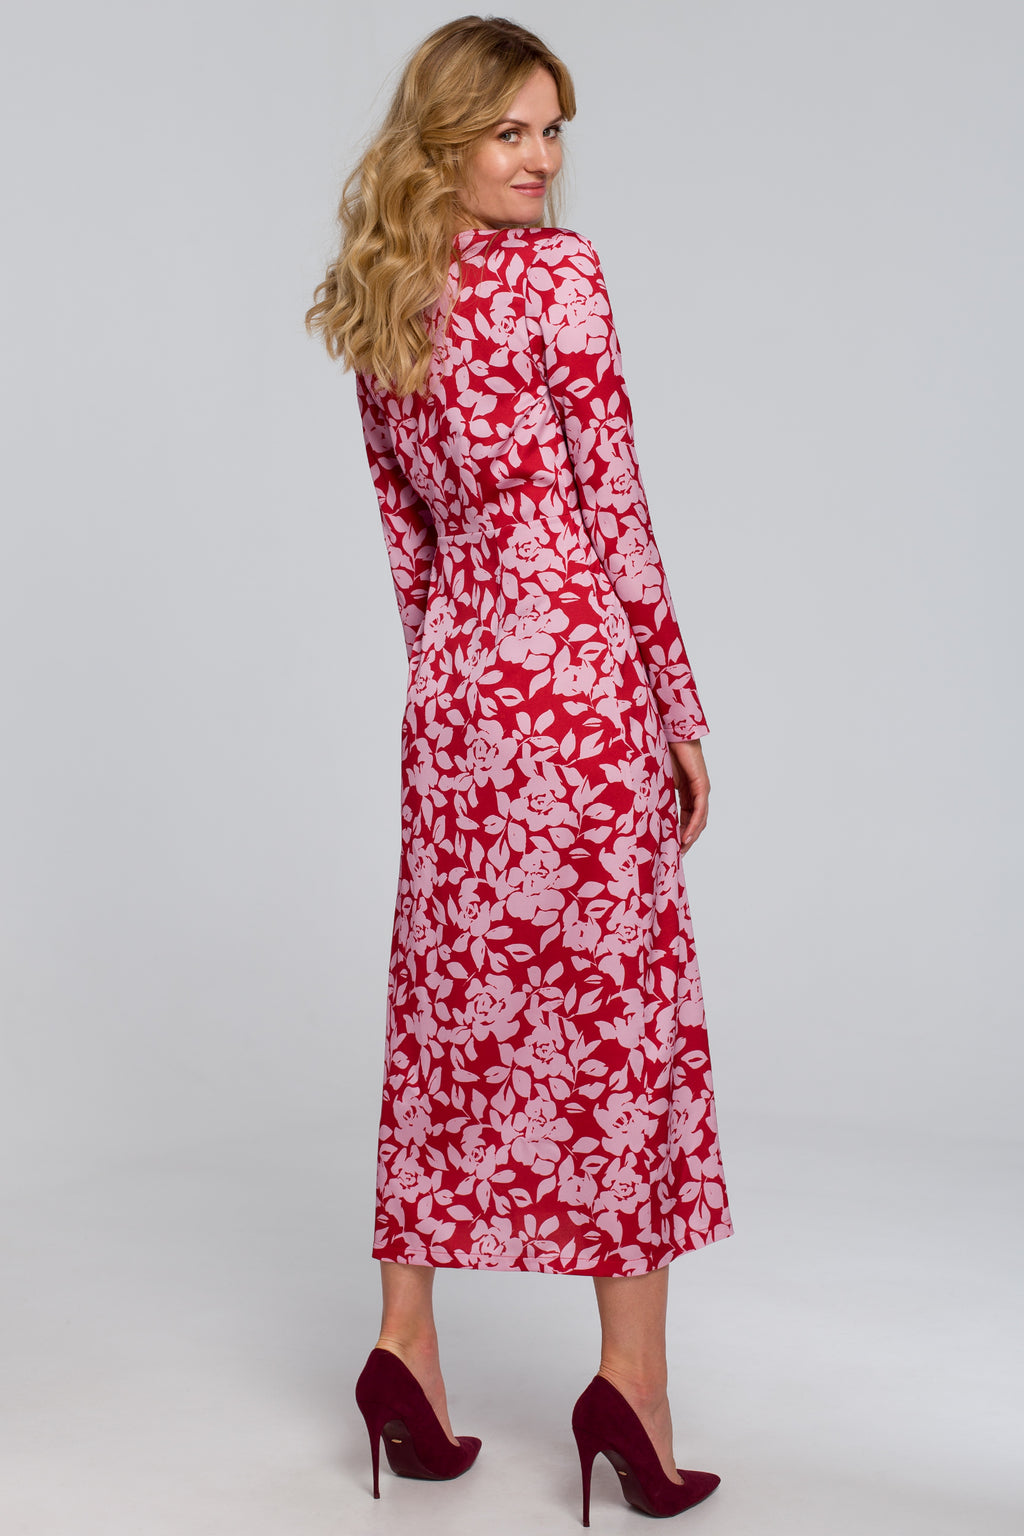 Red And Pink Floral Midi Wrap Dress - So Chic Boutique